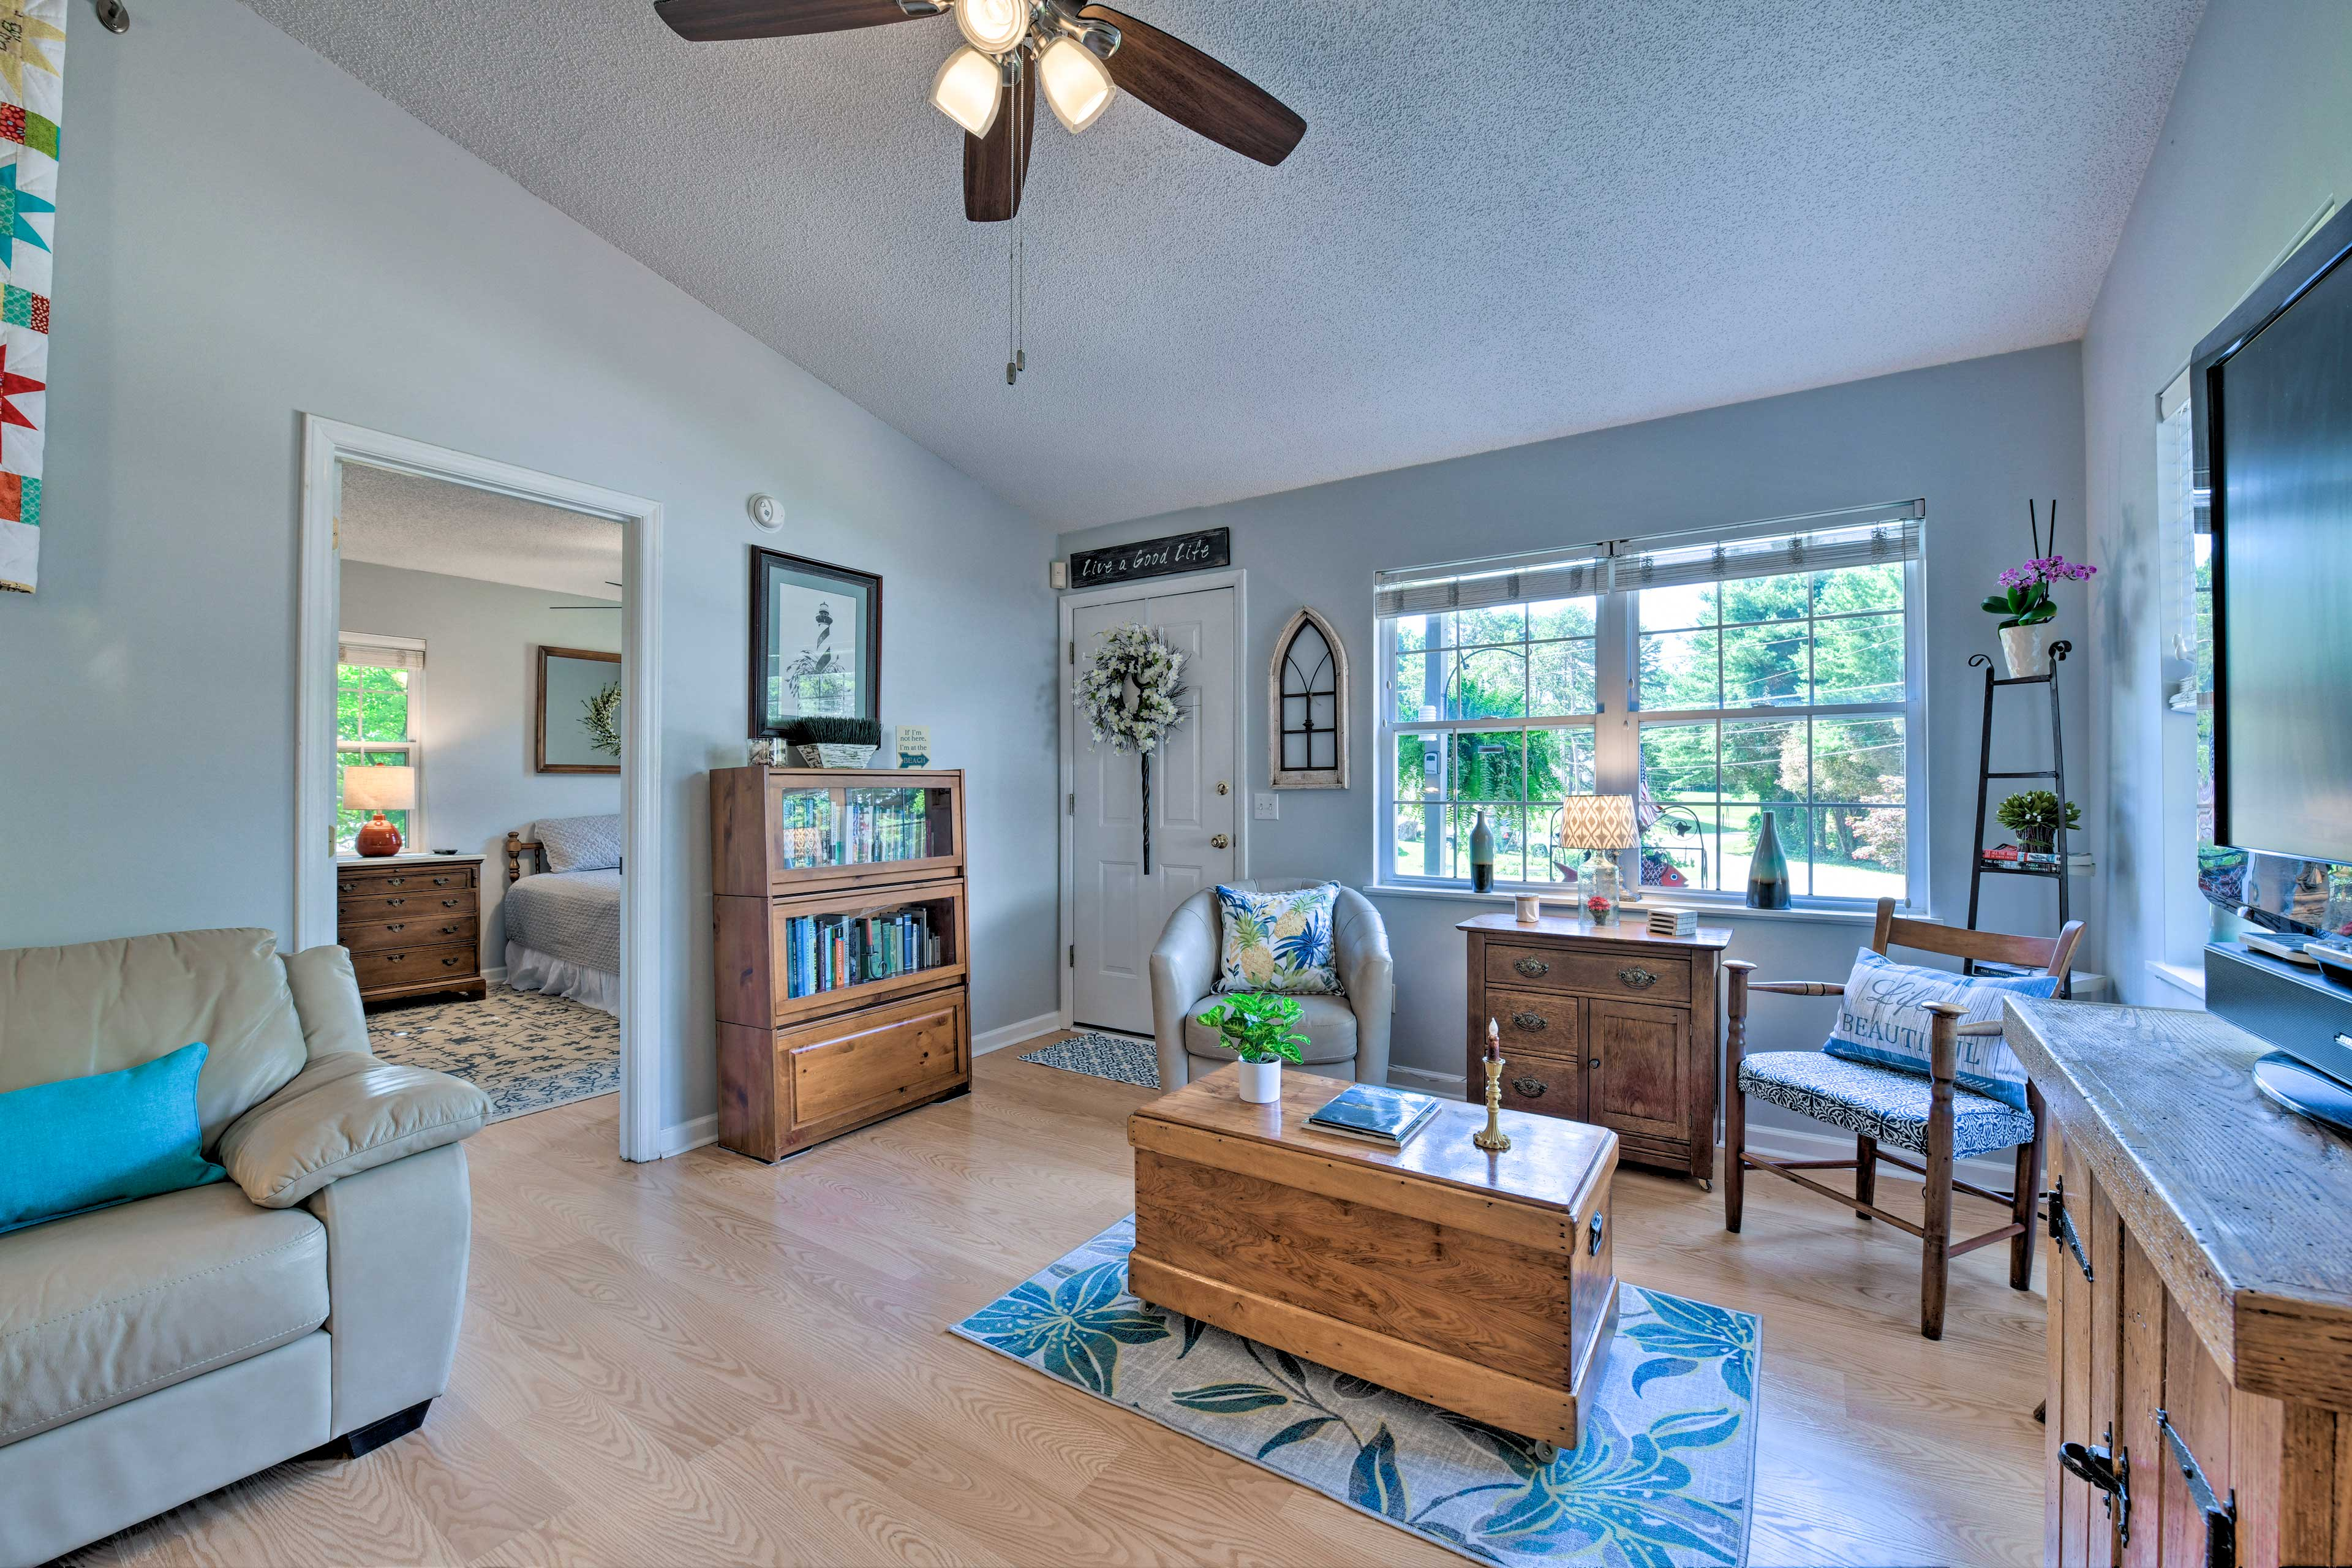 You'll feel right at home in this vacation rental's light and airy interior.